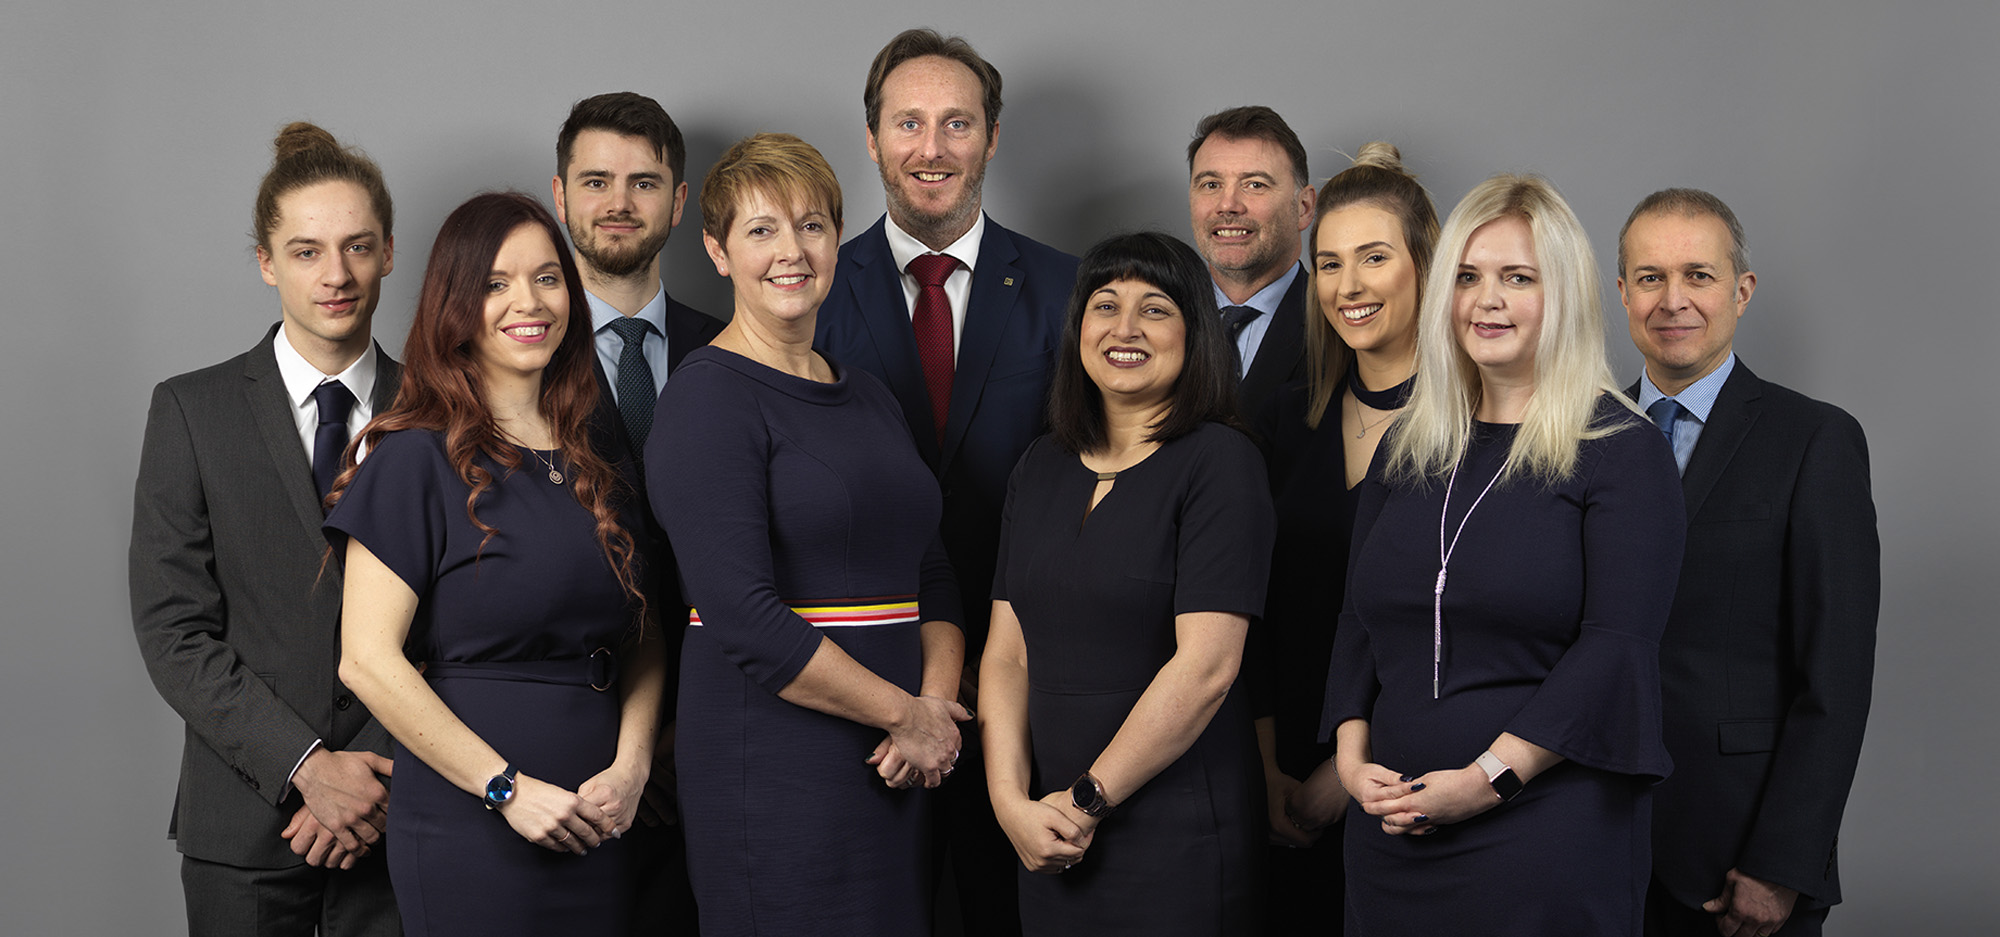 Sands Wealth Management - Team Photo